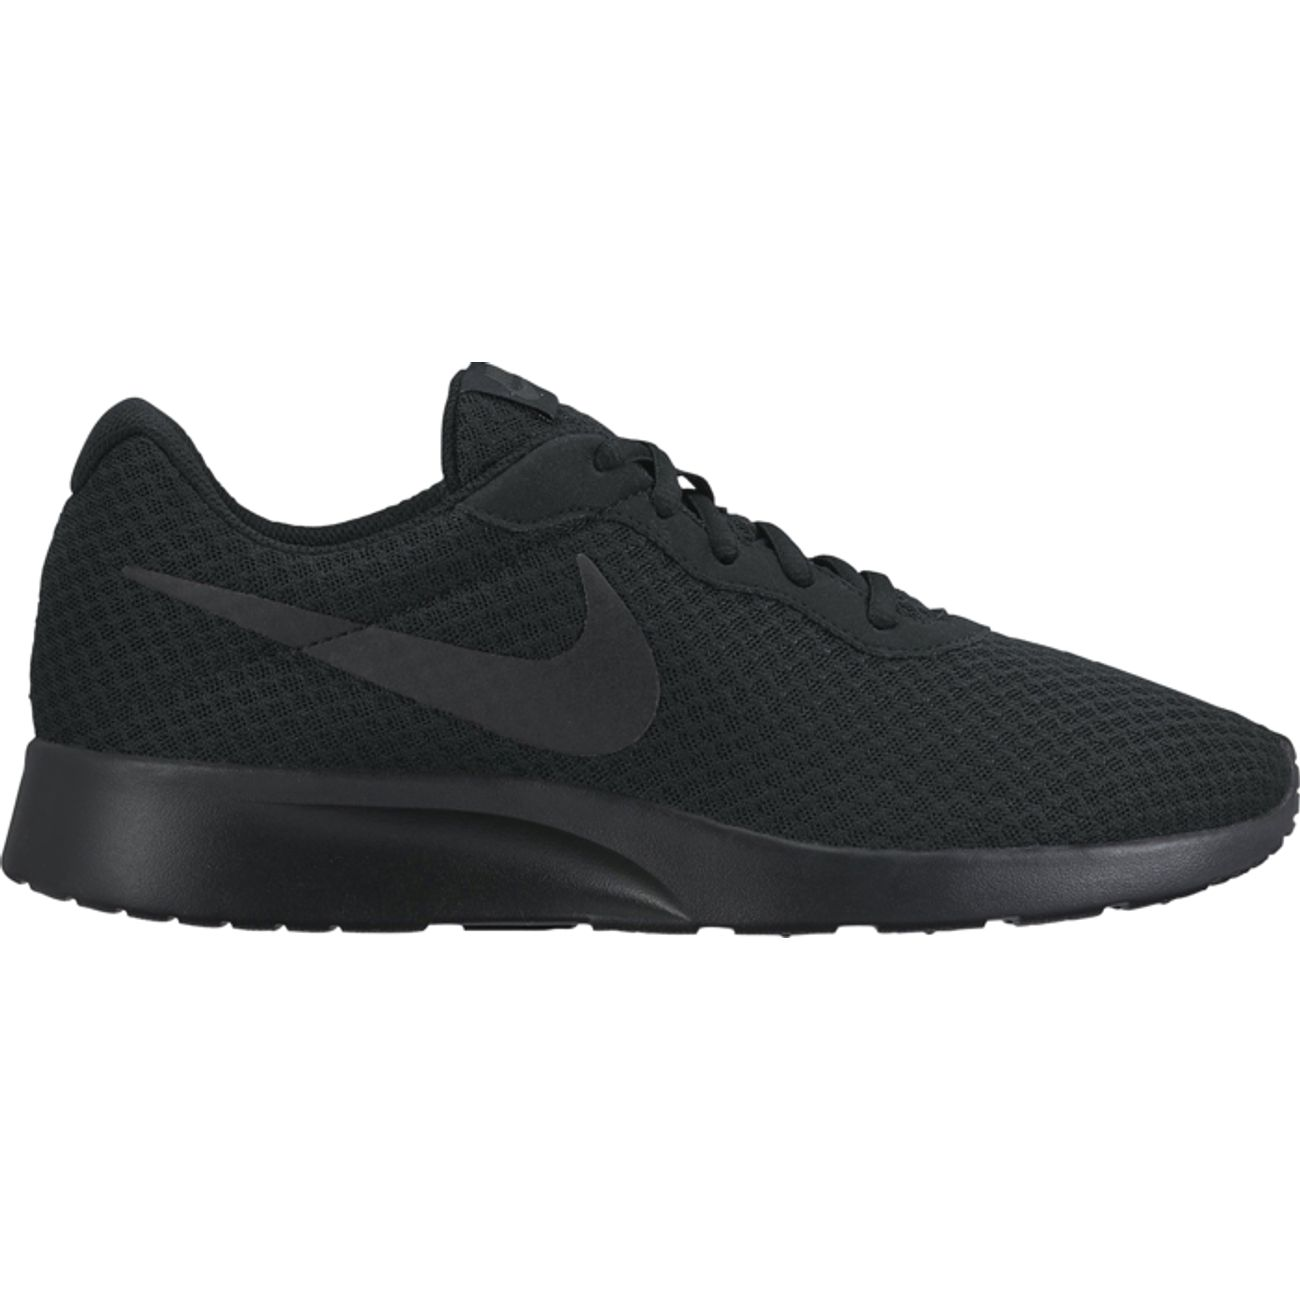 CHAUSSURES BASSES  homme NIKE REVOLUTION VLC